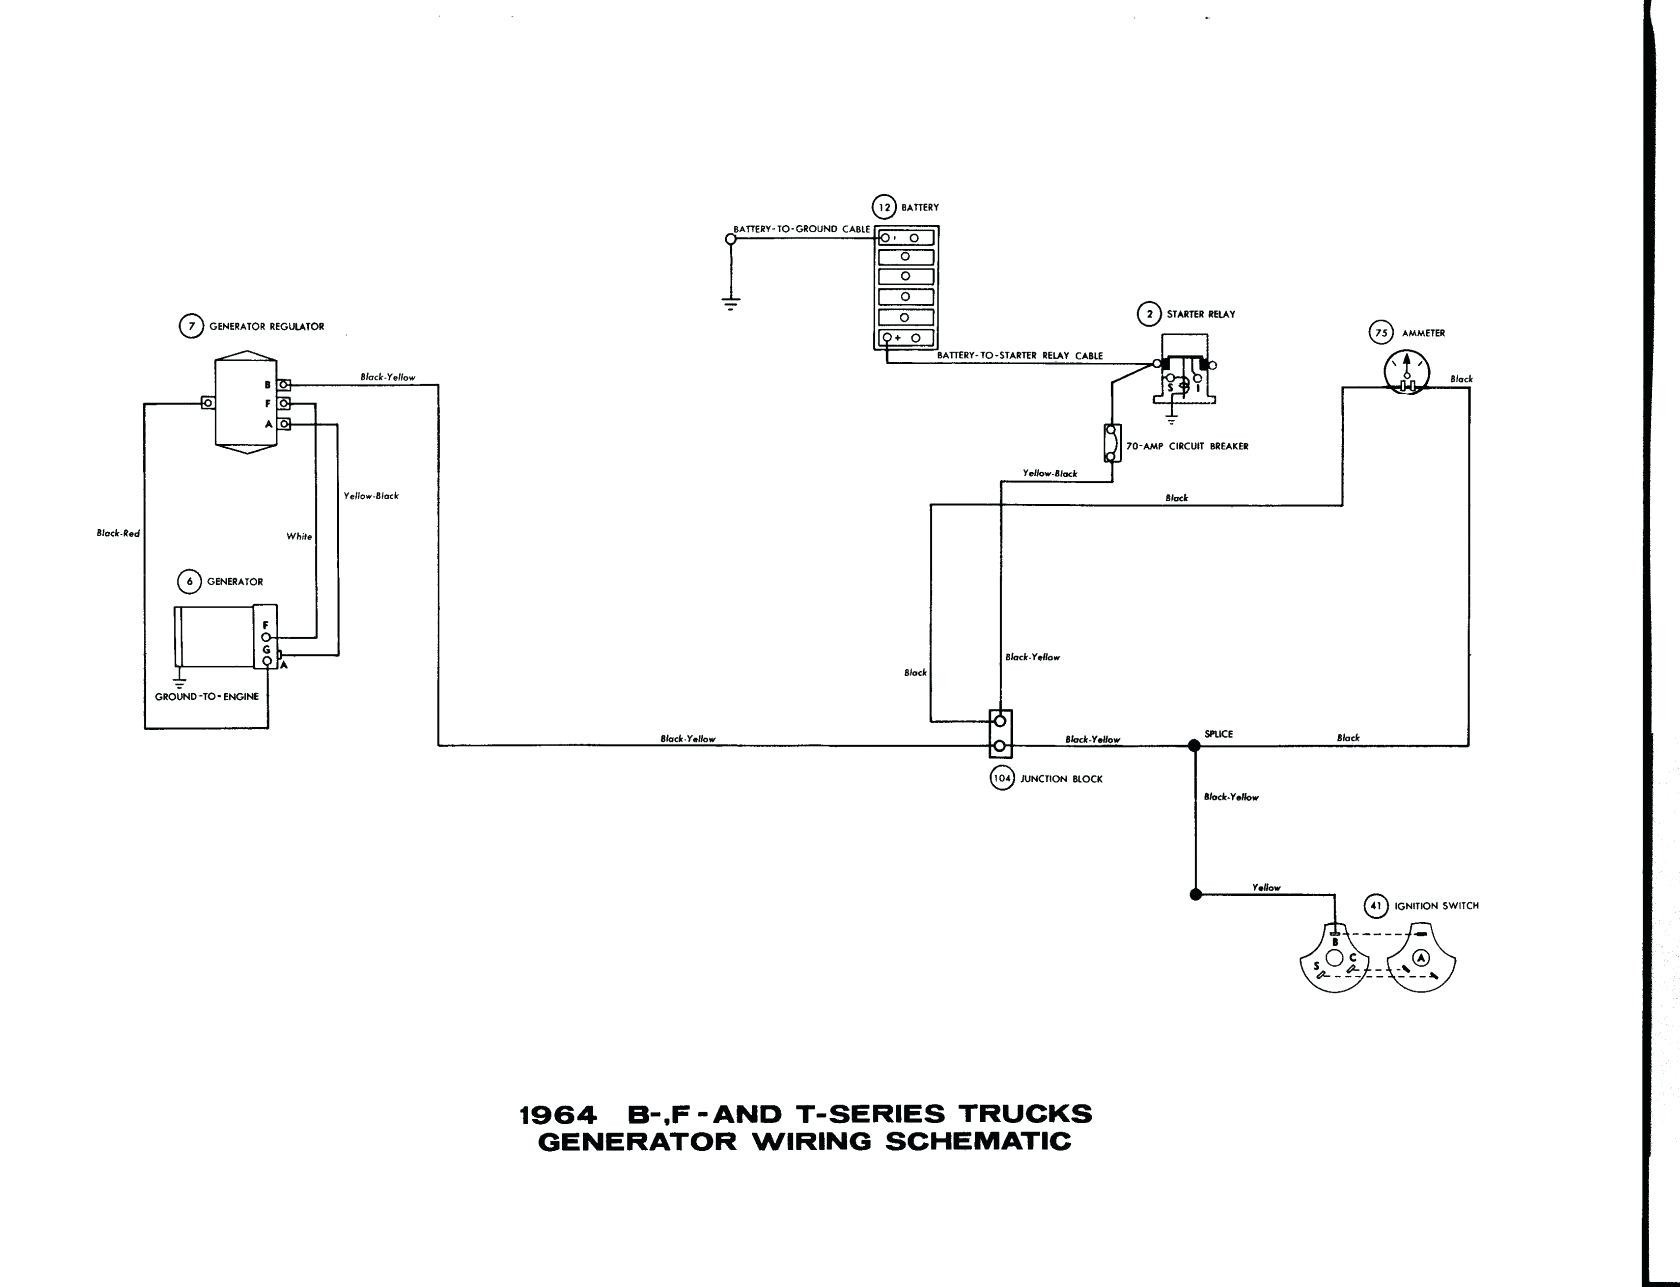 Ac Delco Alternator Wiring Diagram Sample | Wiring Diagram Sample on ford 1g alternator wiring diagram, 68 chevy horn wiring diagram, universal ignition switch wiring diagram, 70 nova wiring diagram, mopar alternator wiring diagram, chevy 3 wire alternator diagram, gm 2wire voltage reg diagram, 1965 impala wiring diagram, 1970 heater switch diagram, ford 302 distributor wiring diagram,